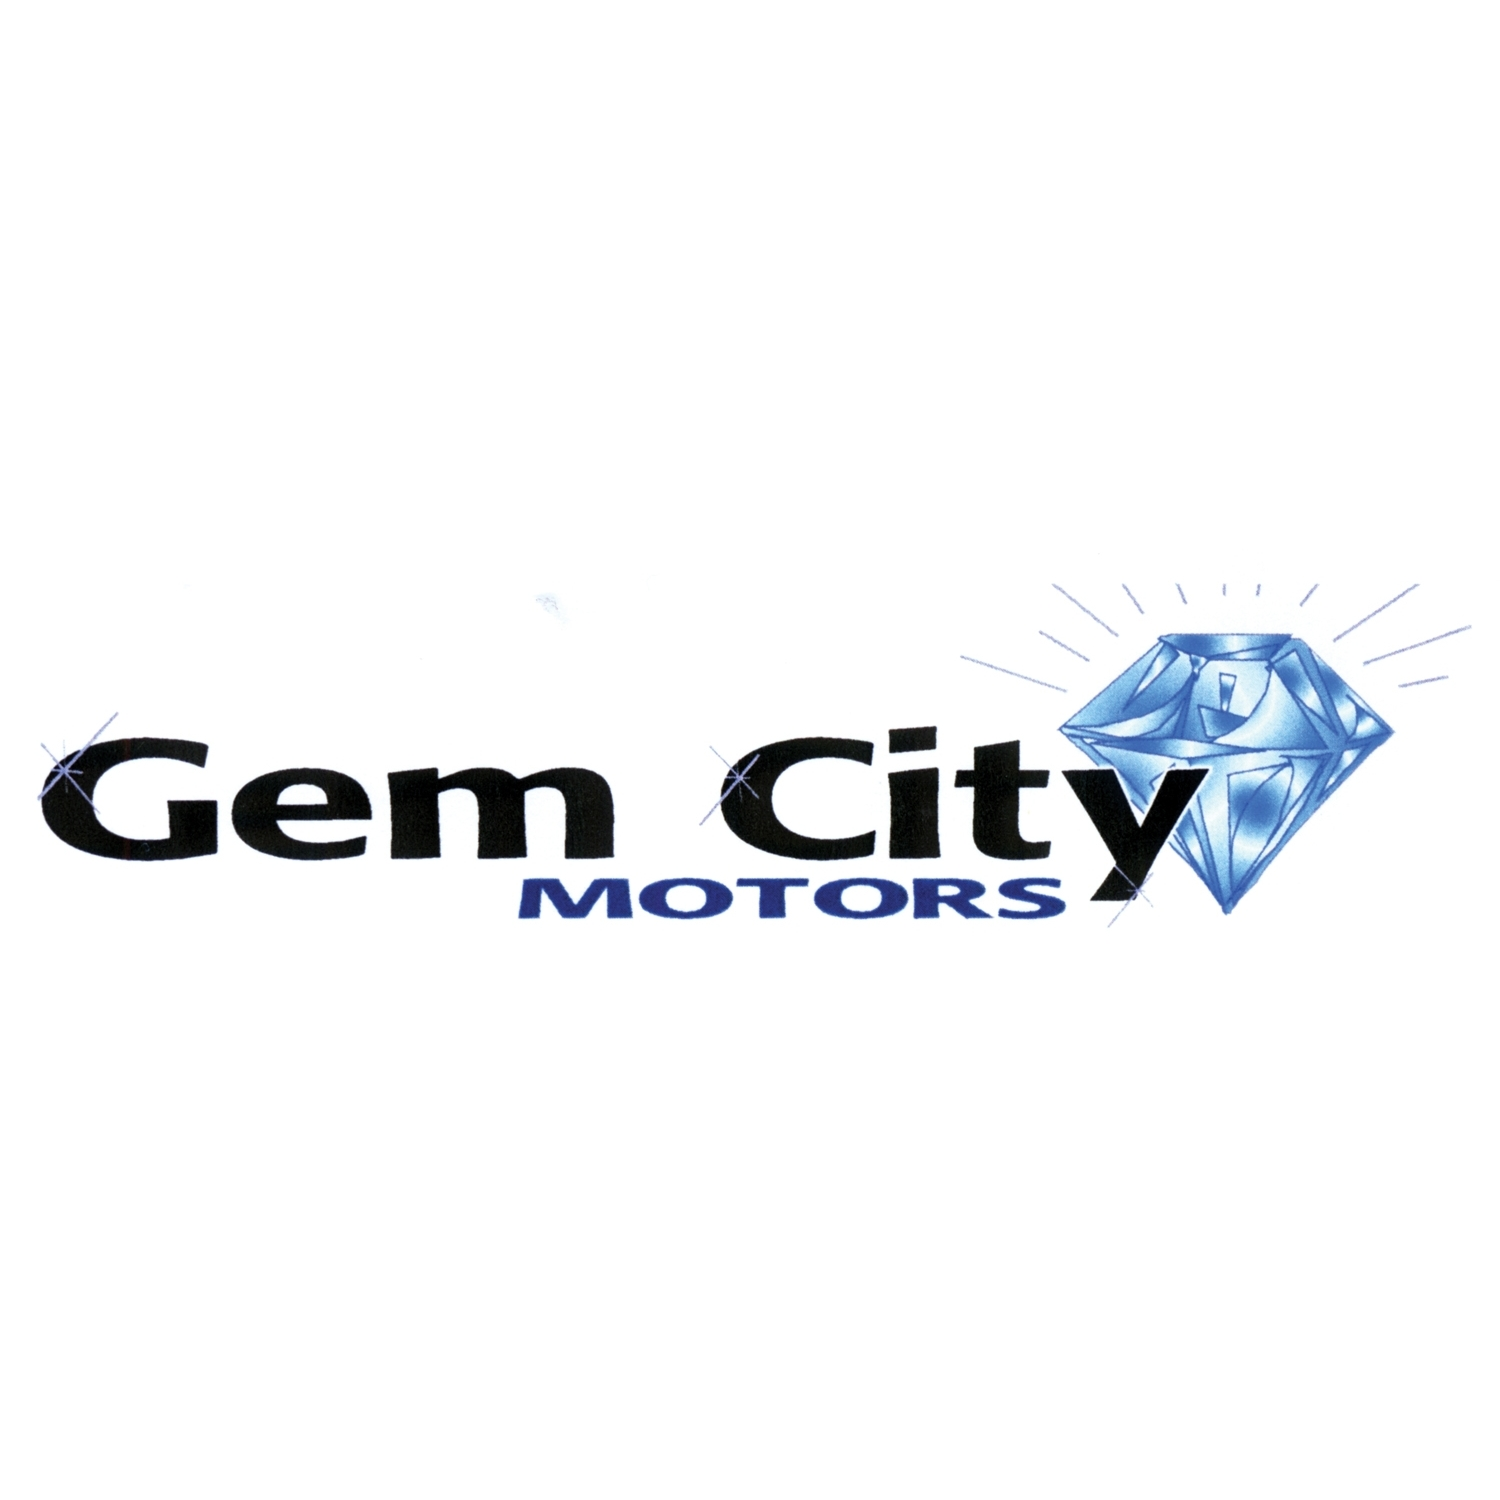 GEM CITY TOWING - Sidney, MT - Auto Towing & Wrecking